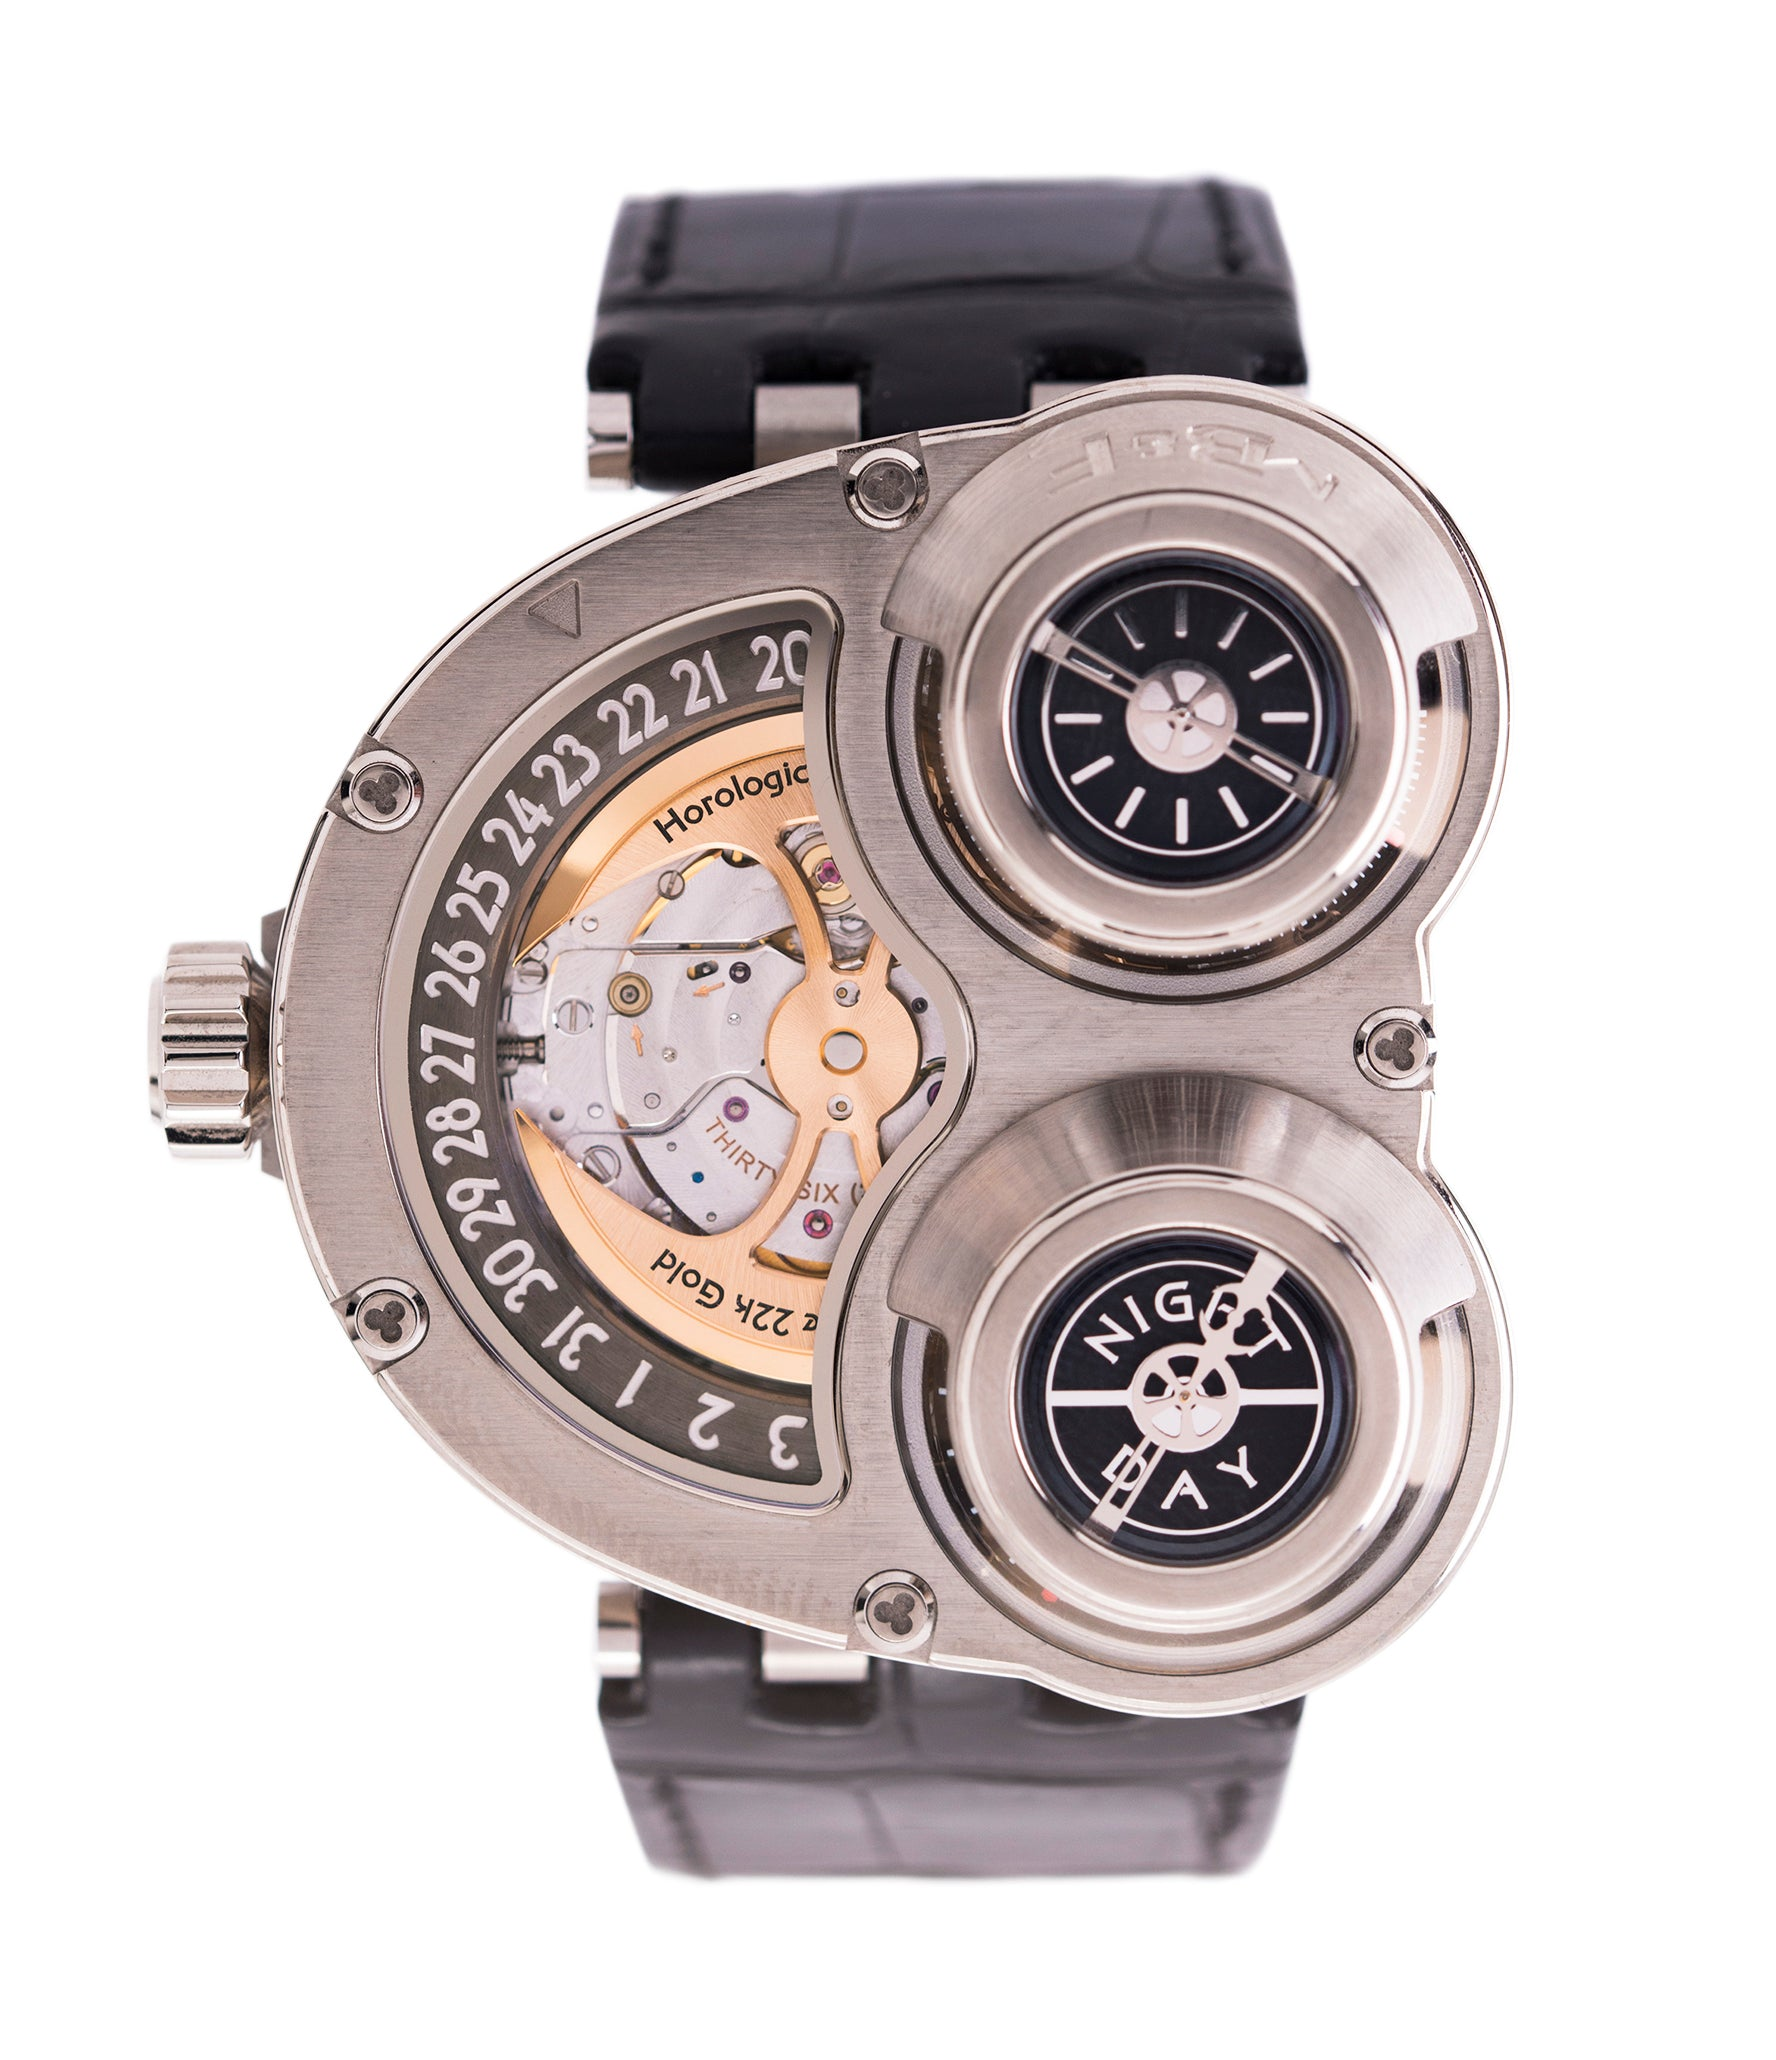 buy MB&F Sidewinder Horological Machine HM3 white gold watch by independent watchmaker Max Busser Wiederrecht for sale online at A Collected Man London UK specialist of rare watches